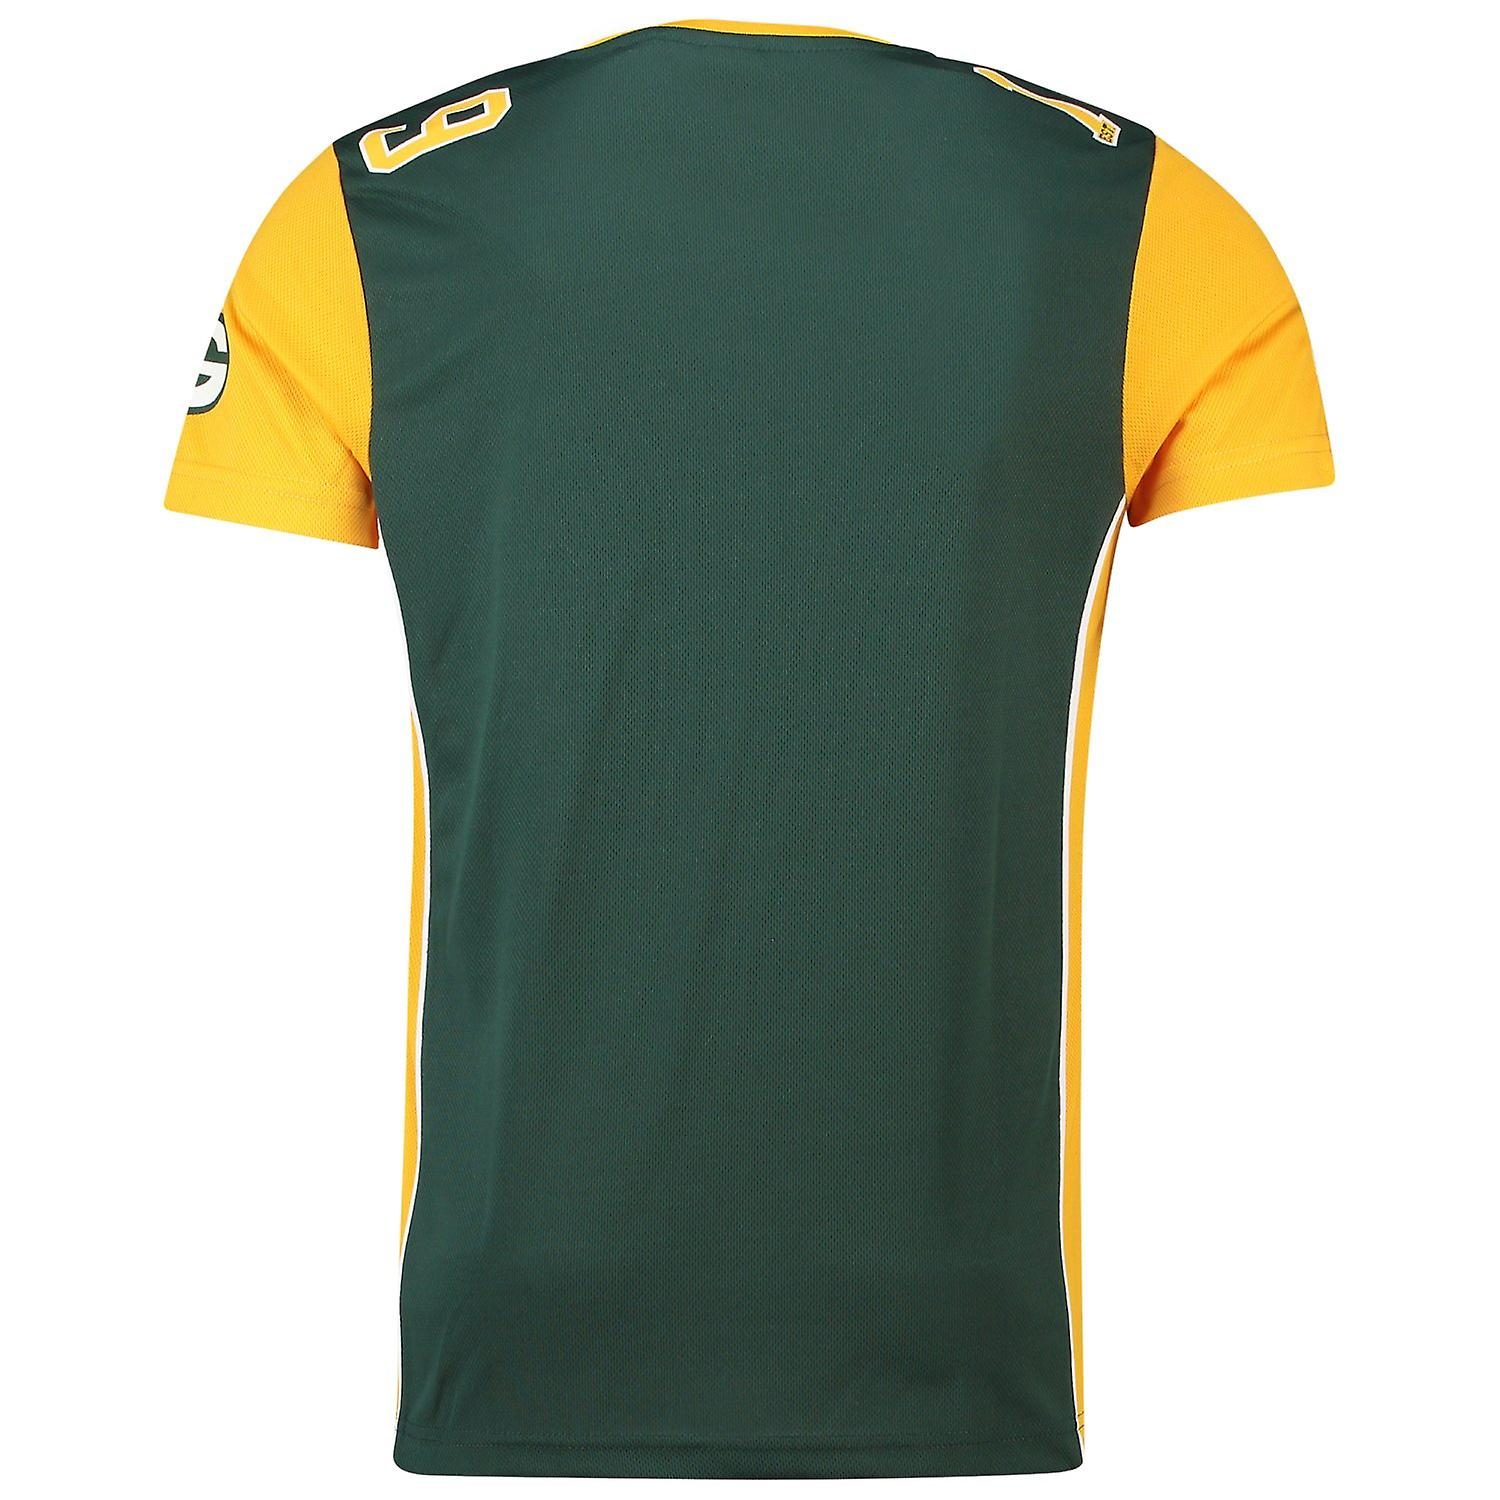 Majestic NFL Mesh Polyester Jersey Shirt - Green Bay Packers